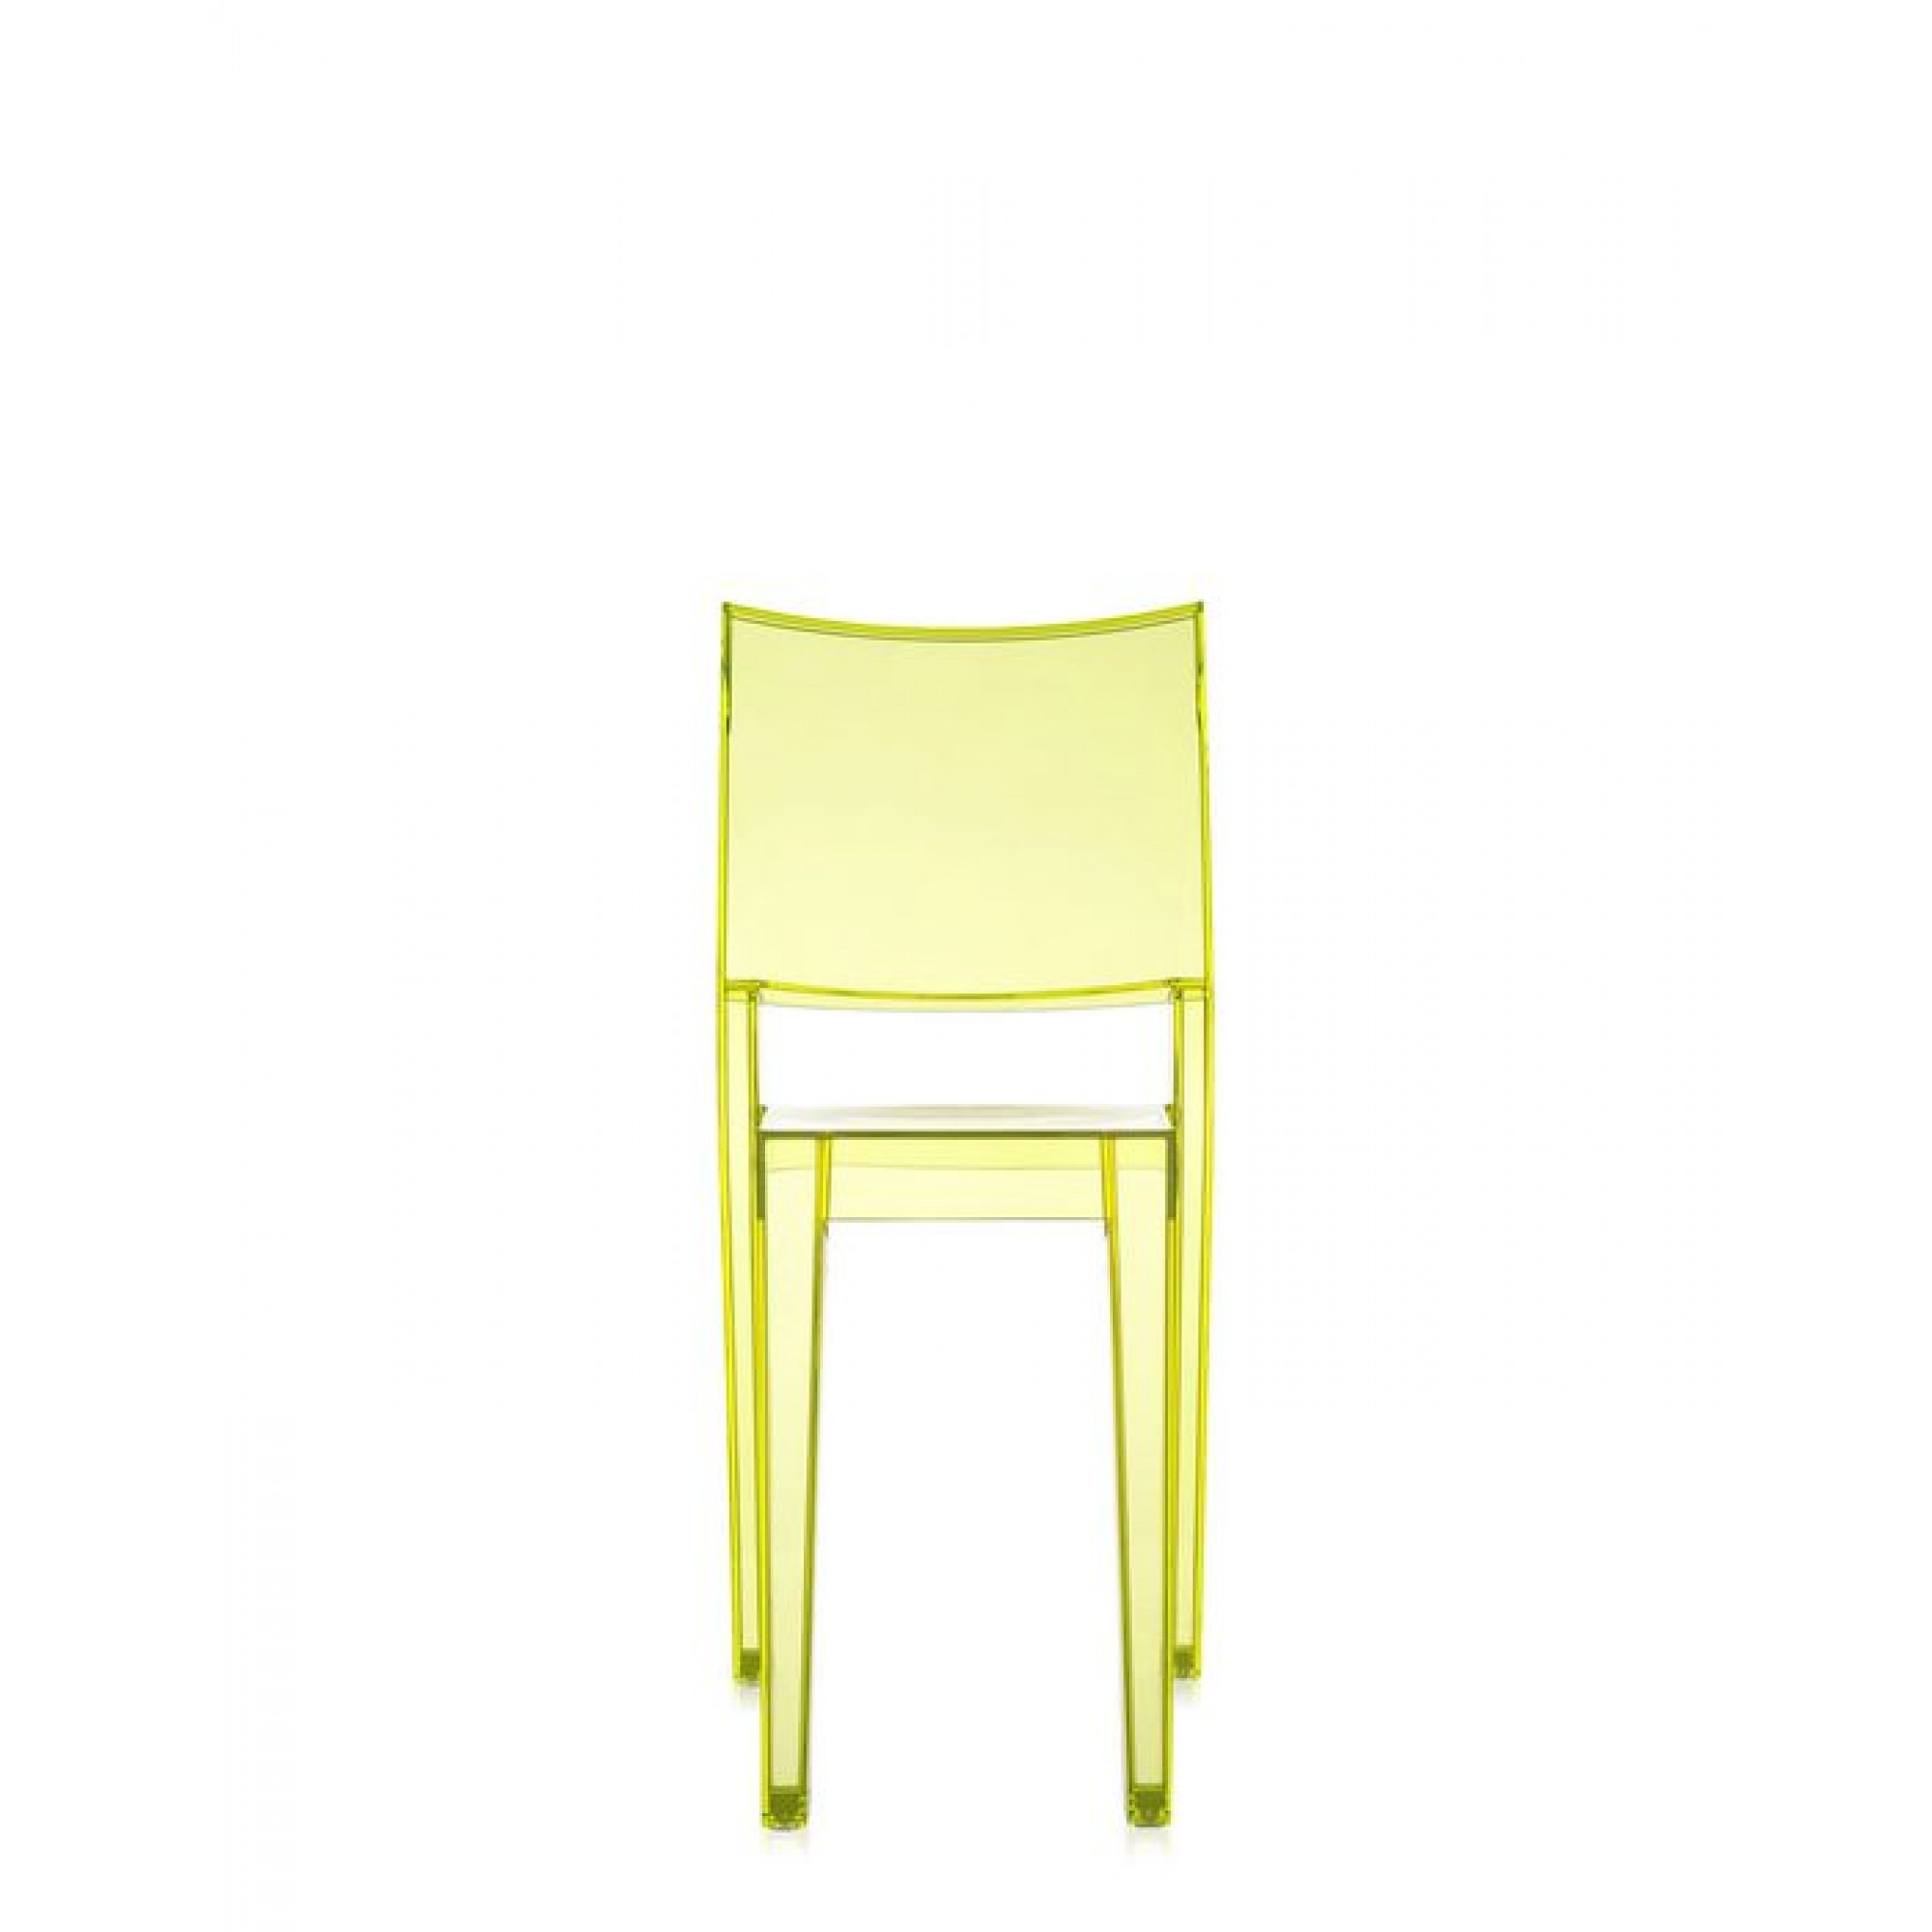 LA MARIE | Chairs | Seats | KARTELL - Masonionline